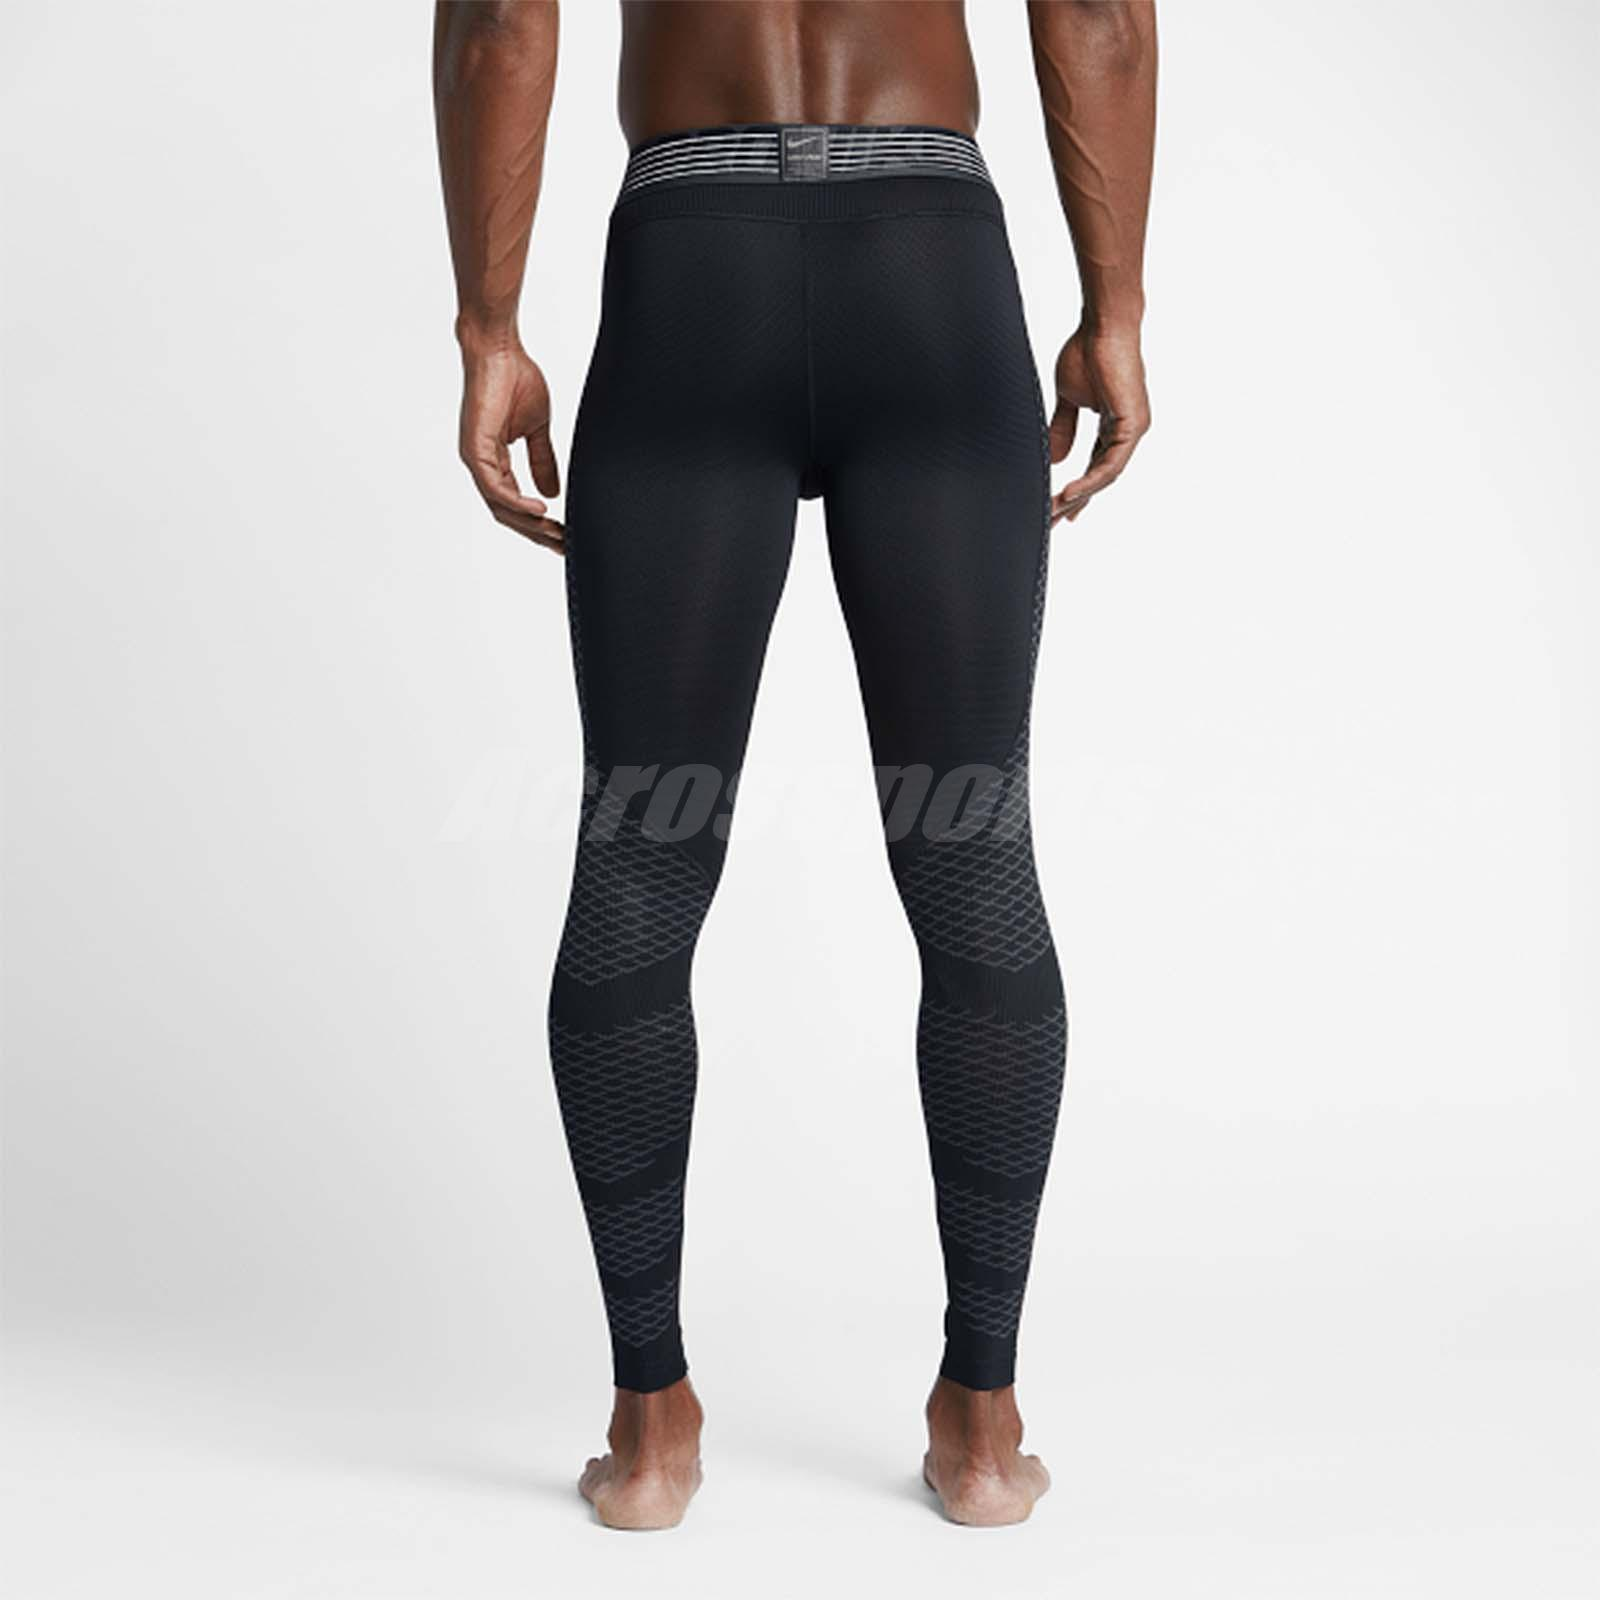 d34d255c6e761 Details about Nike Men Pro Hypercool Tight Leggings Black Training Sport  Running 828162-010